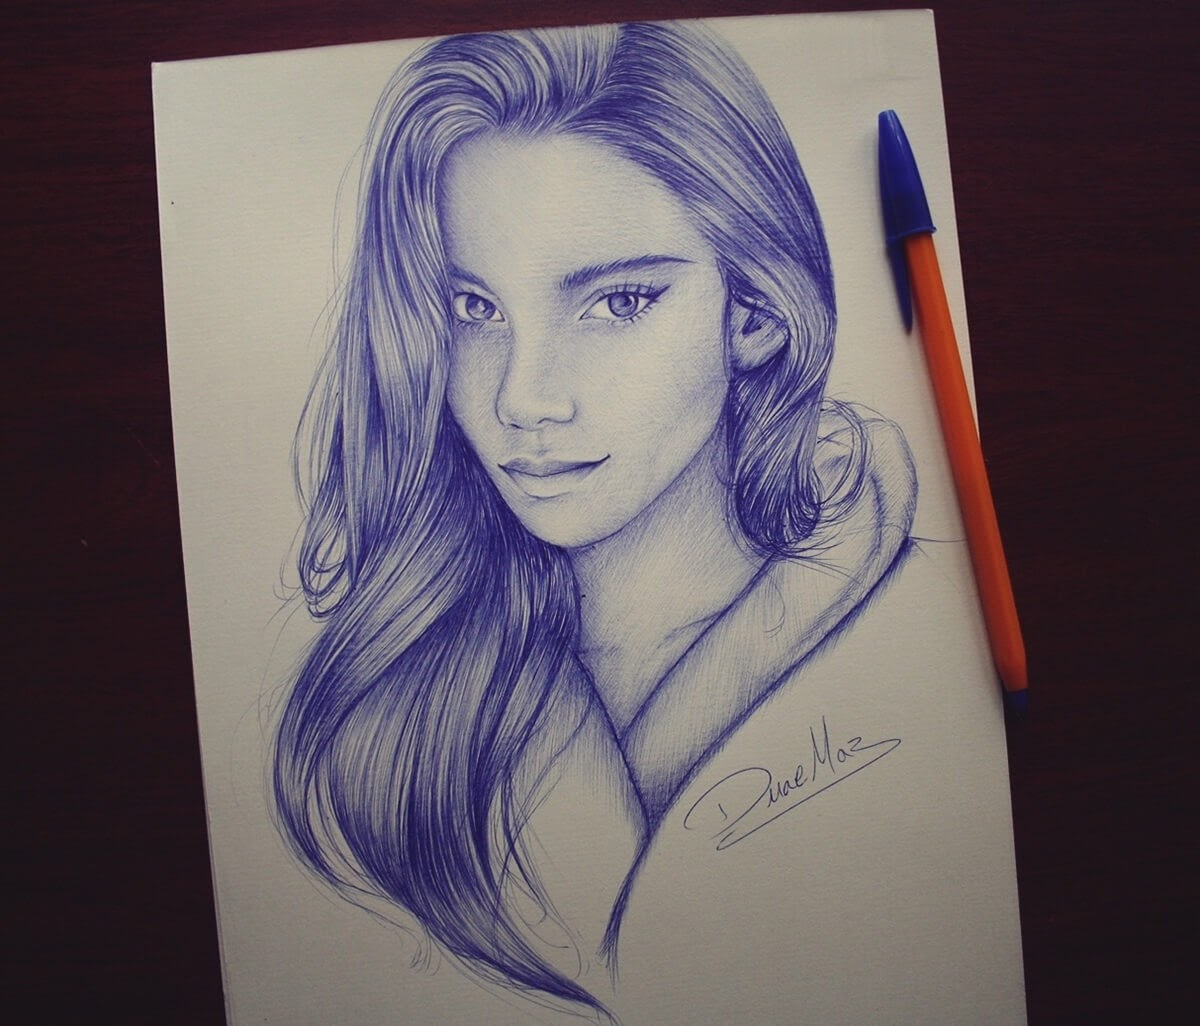 11-Duae-Maz-Blue-and-Black-Ballpoint-Pen-Portraits-www-designstack-co